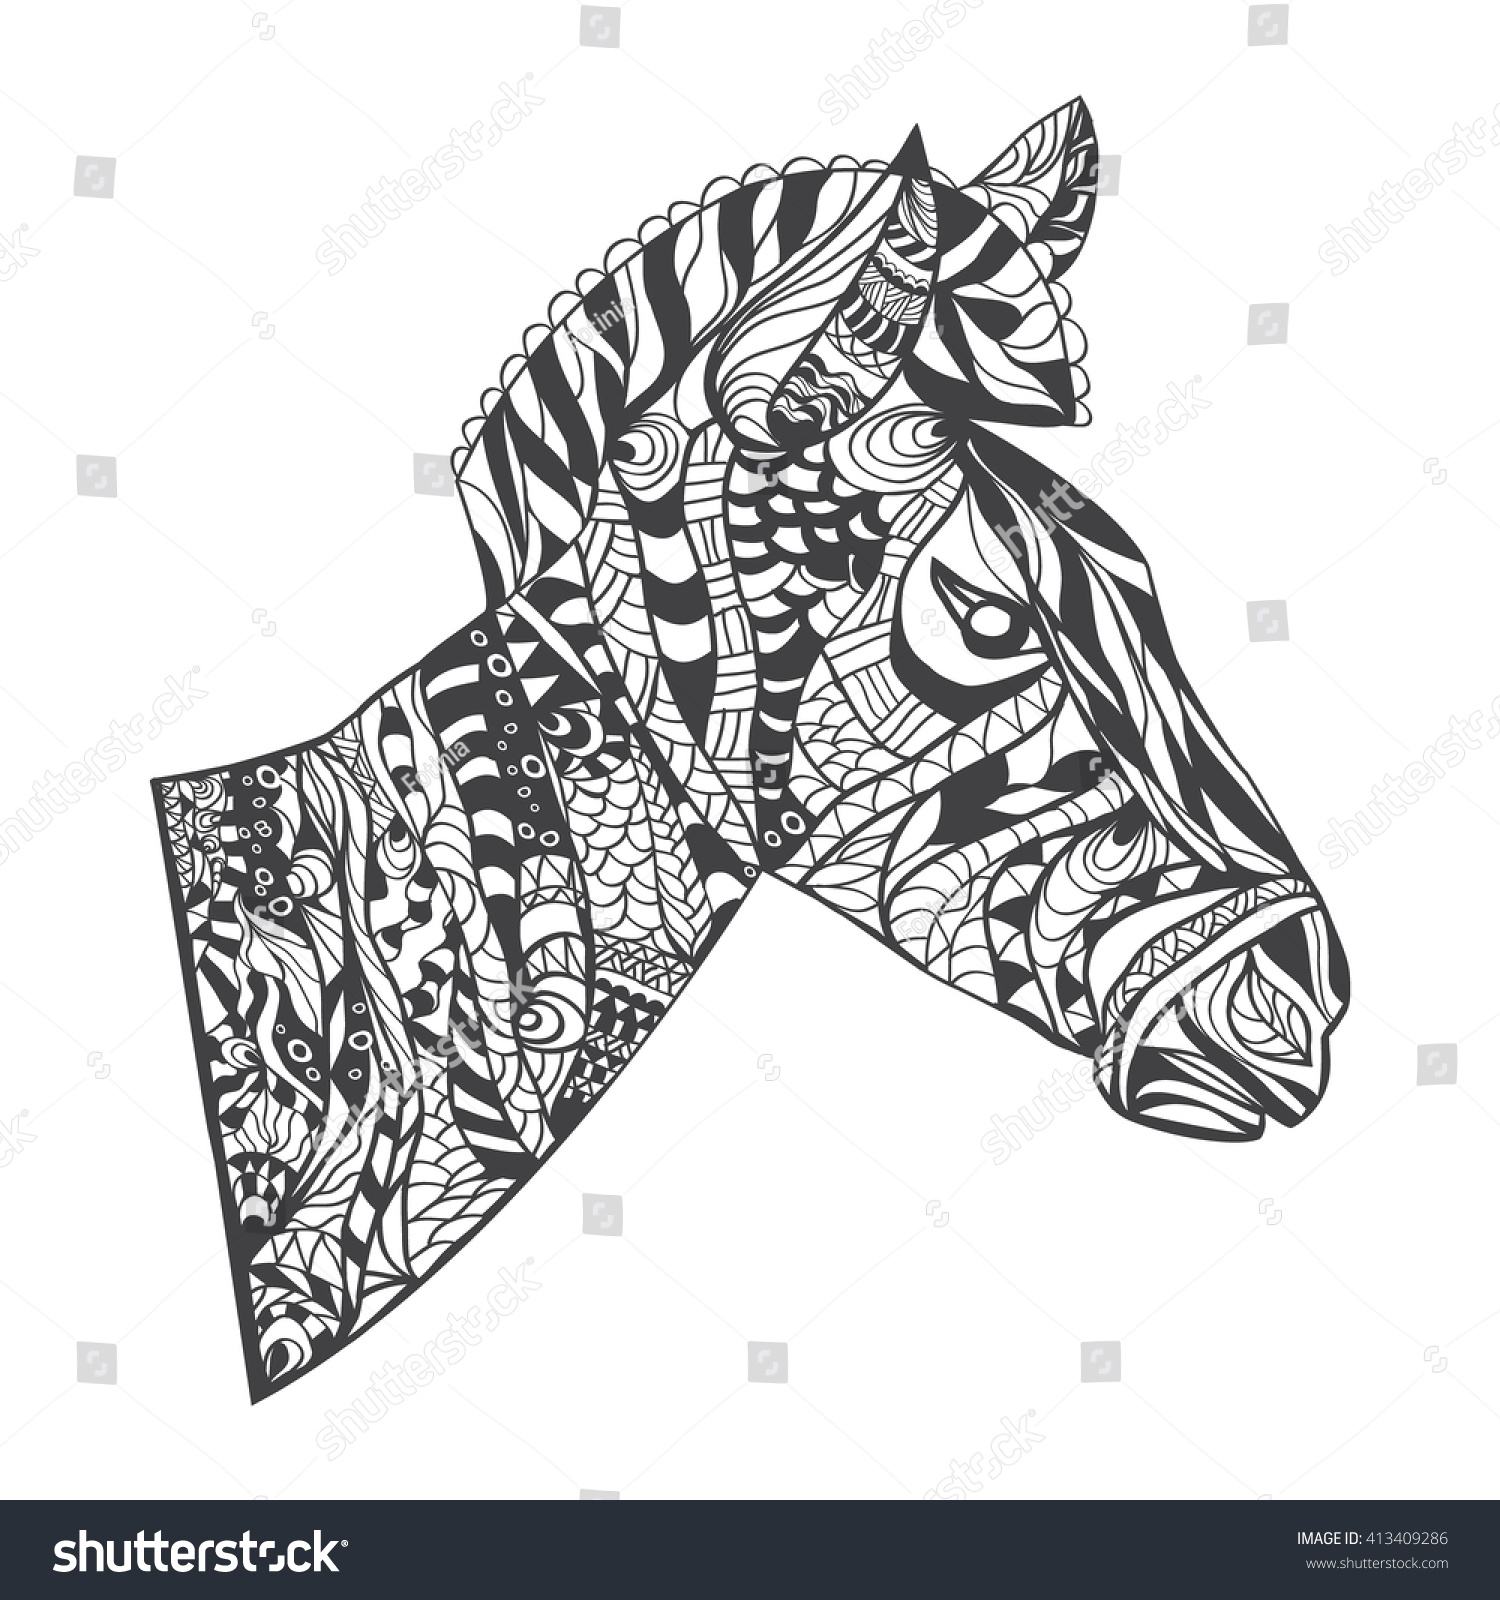 vector zentangle style zebra head illustration stock vector